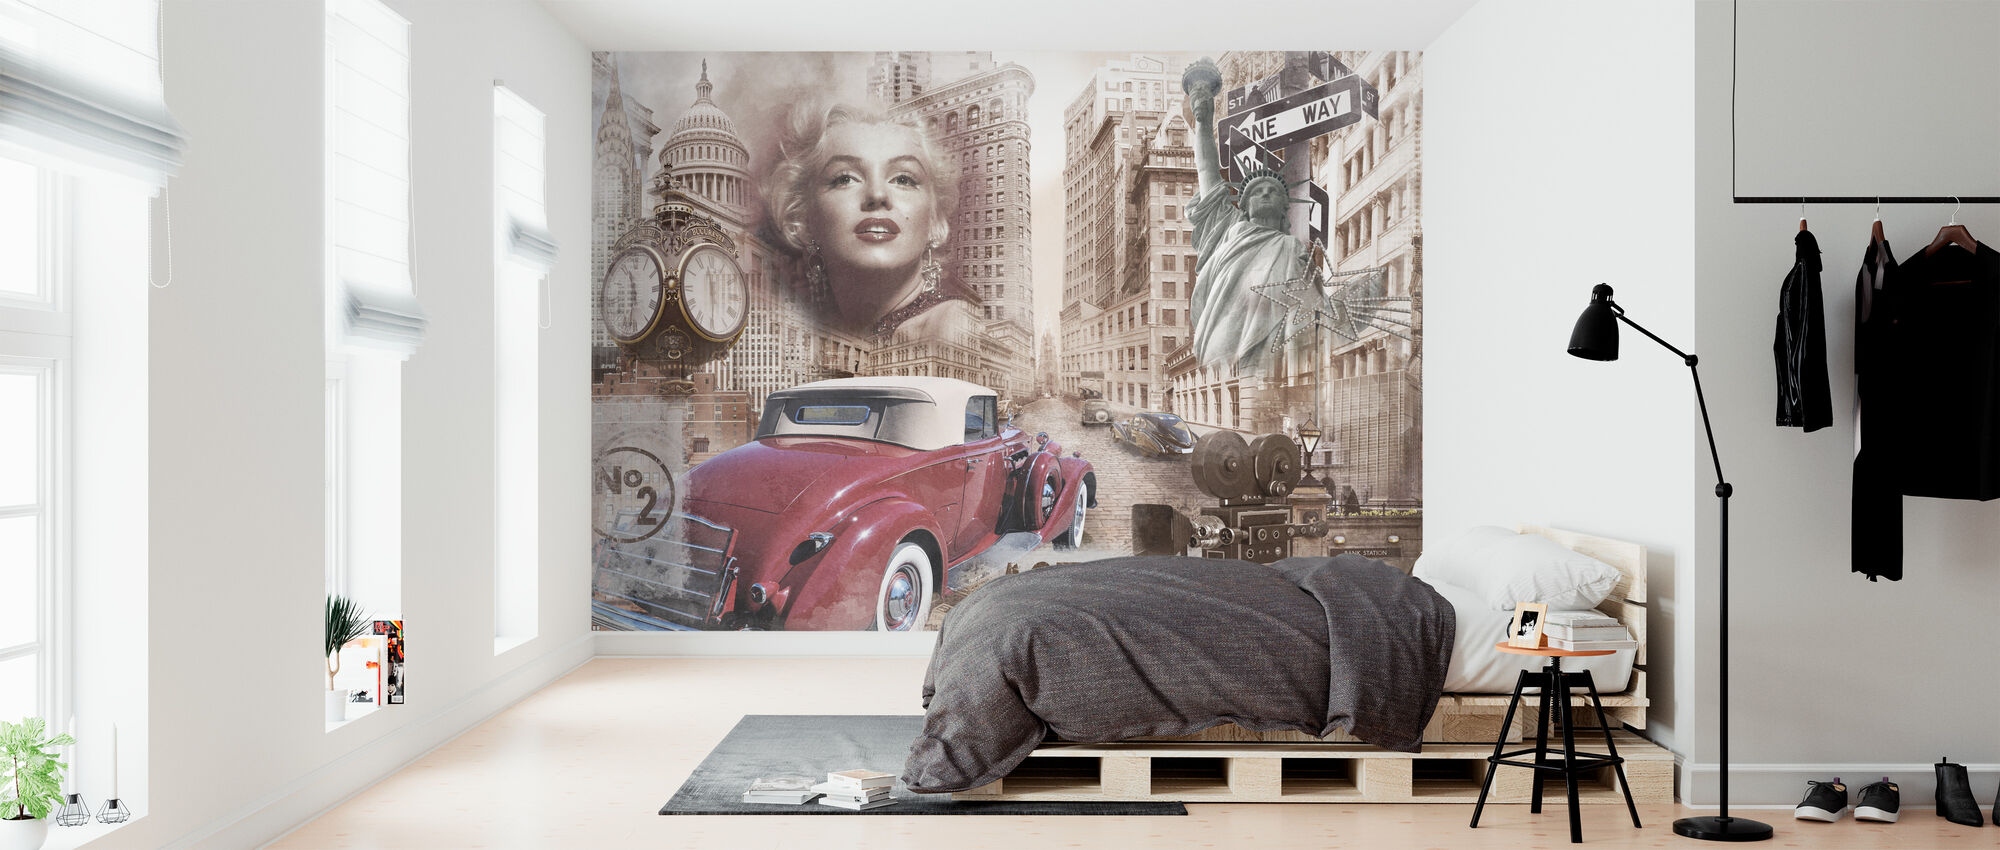 Wondrous Fifties - Wallpaper - Bedroom